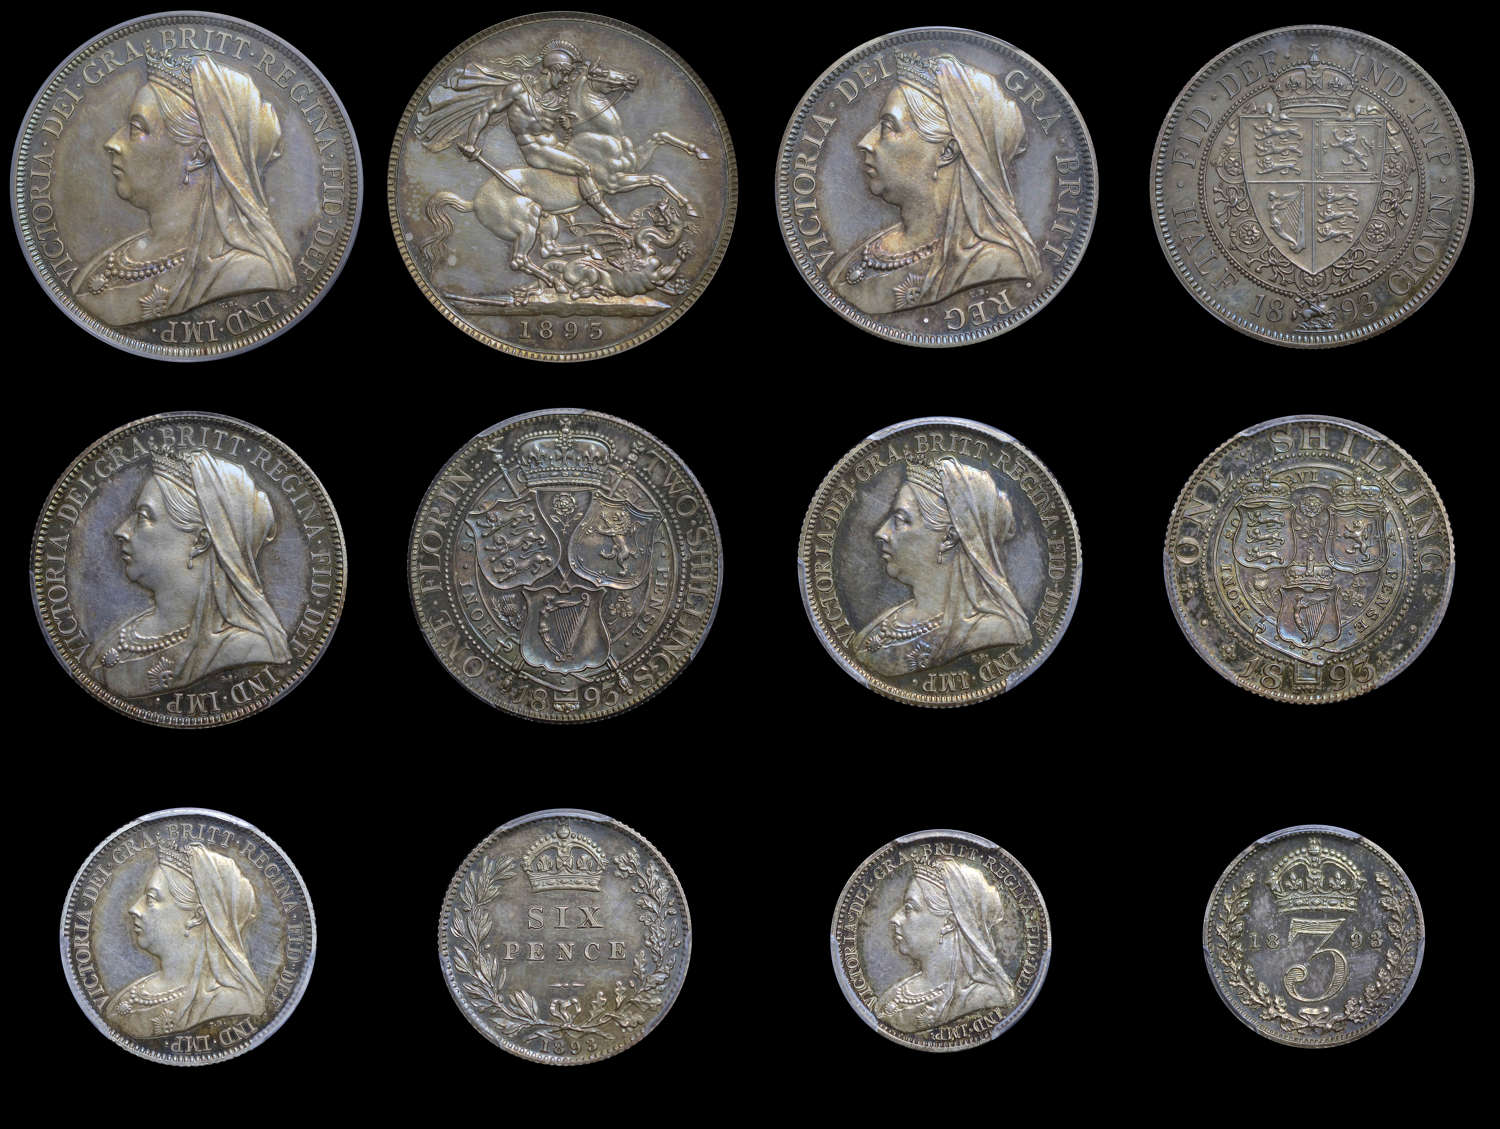 VICTORIA 1893 SILVER PROOF SET, ALL GRADED BY PCGS